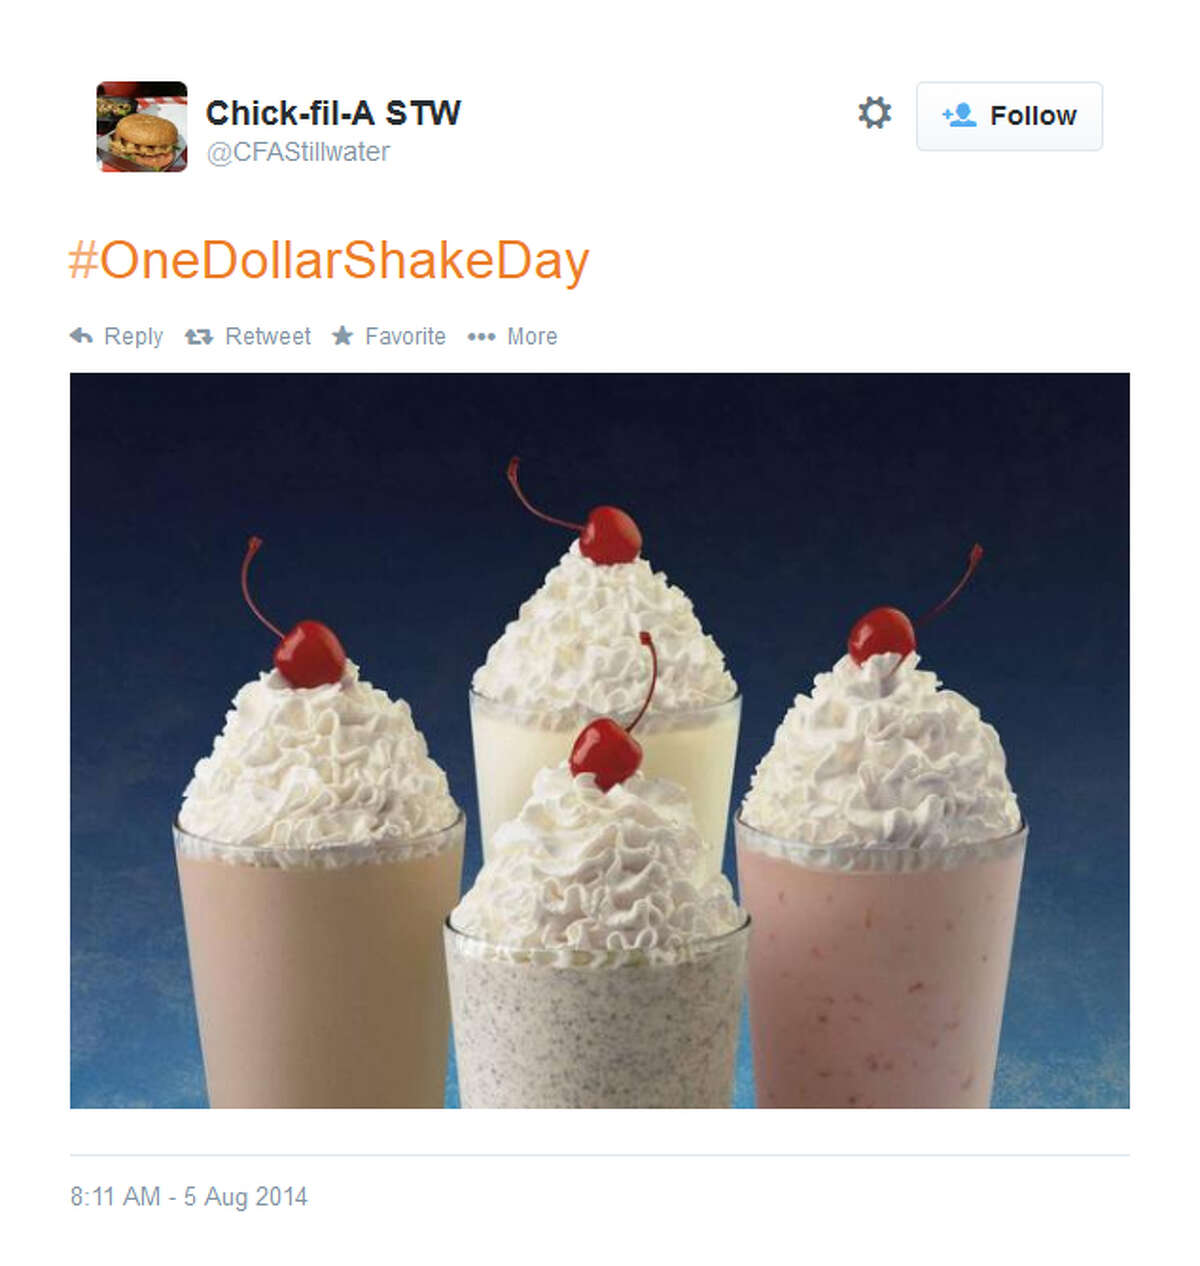 A former Texas resident claims in court that a cherry atop a Chick Fil-A milkshake like one of these caused her tooth and gum damage, ultimately leading to a heart attack. (File art)